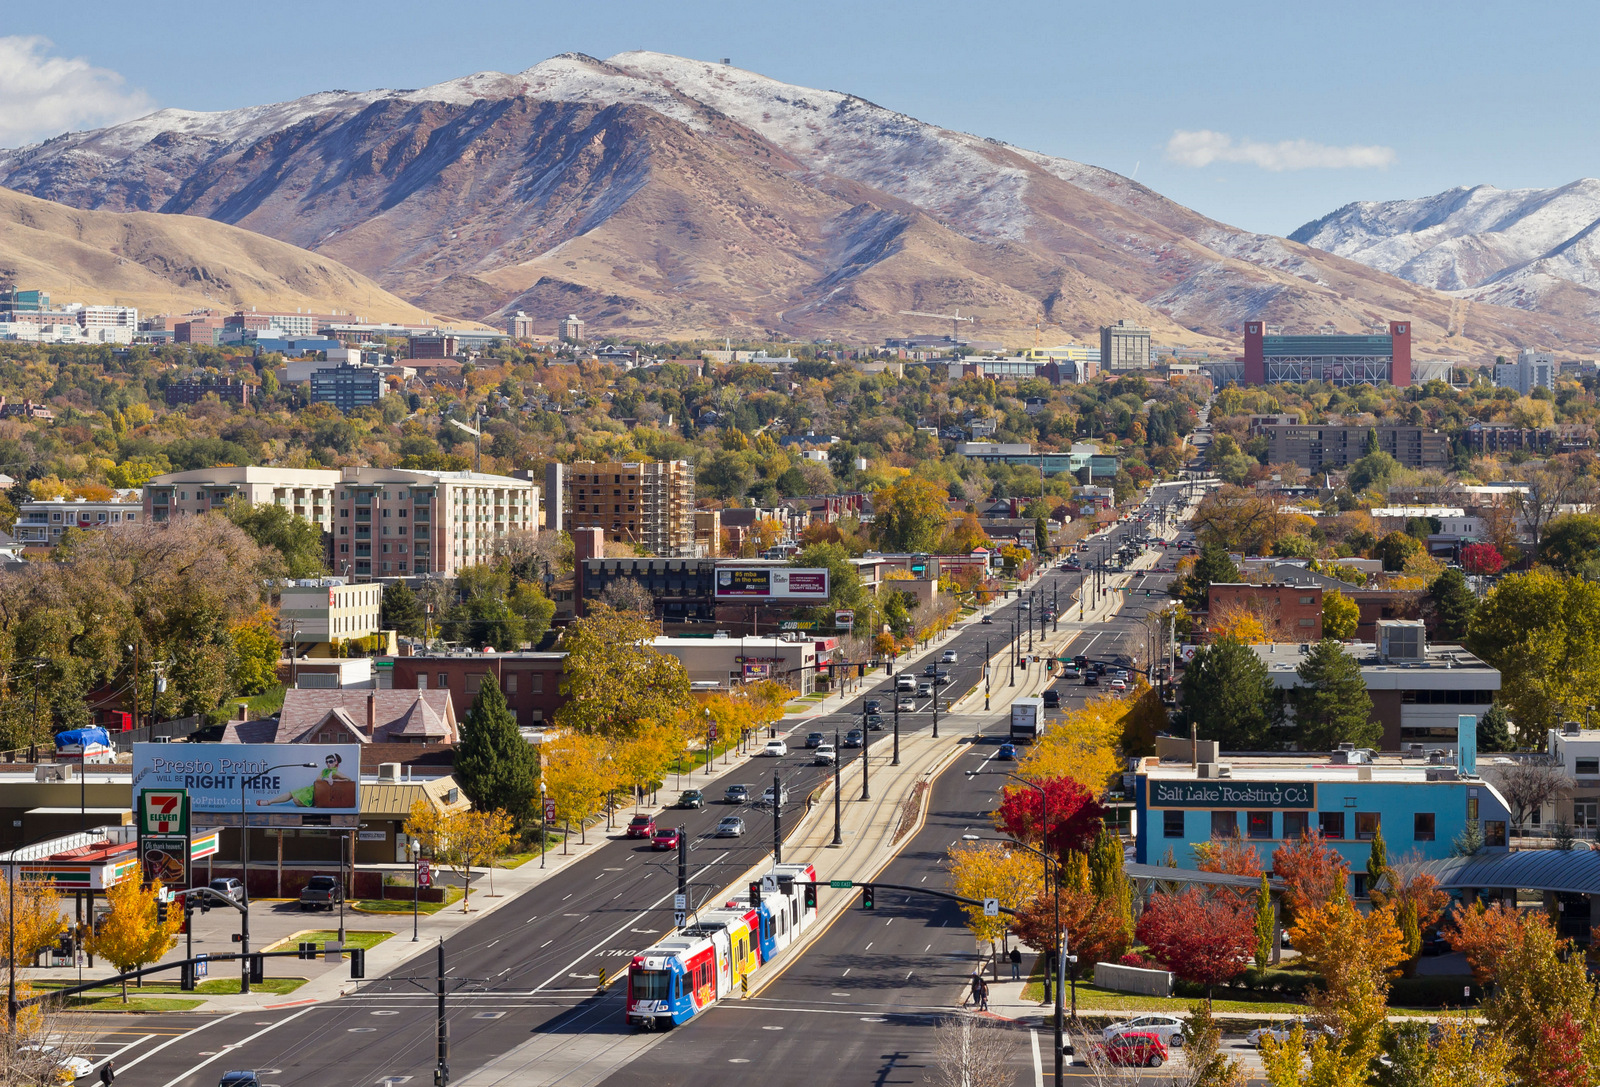 salt lake city Know before you go, go-utah has travel guides and hotel information for salt lake city, utah whether you want a summer outdoor adventure or a winter ski holiday.